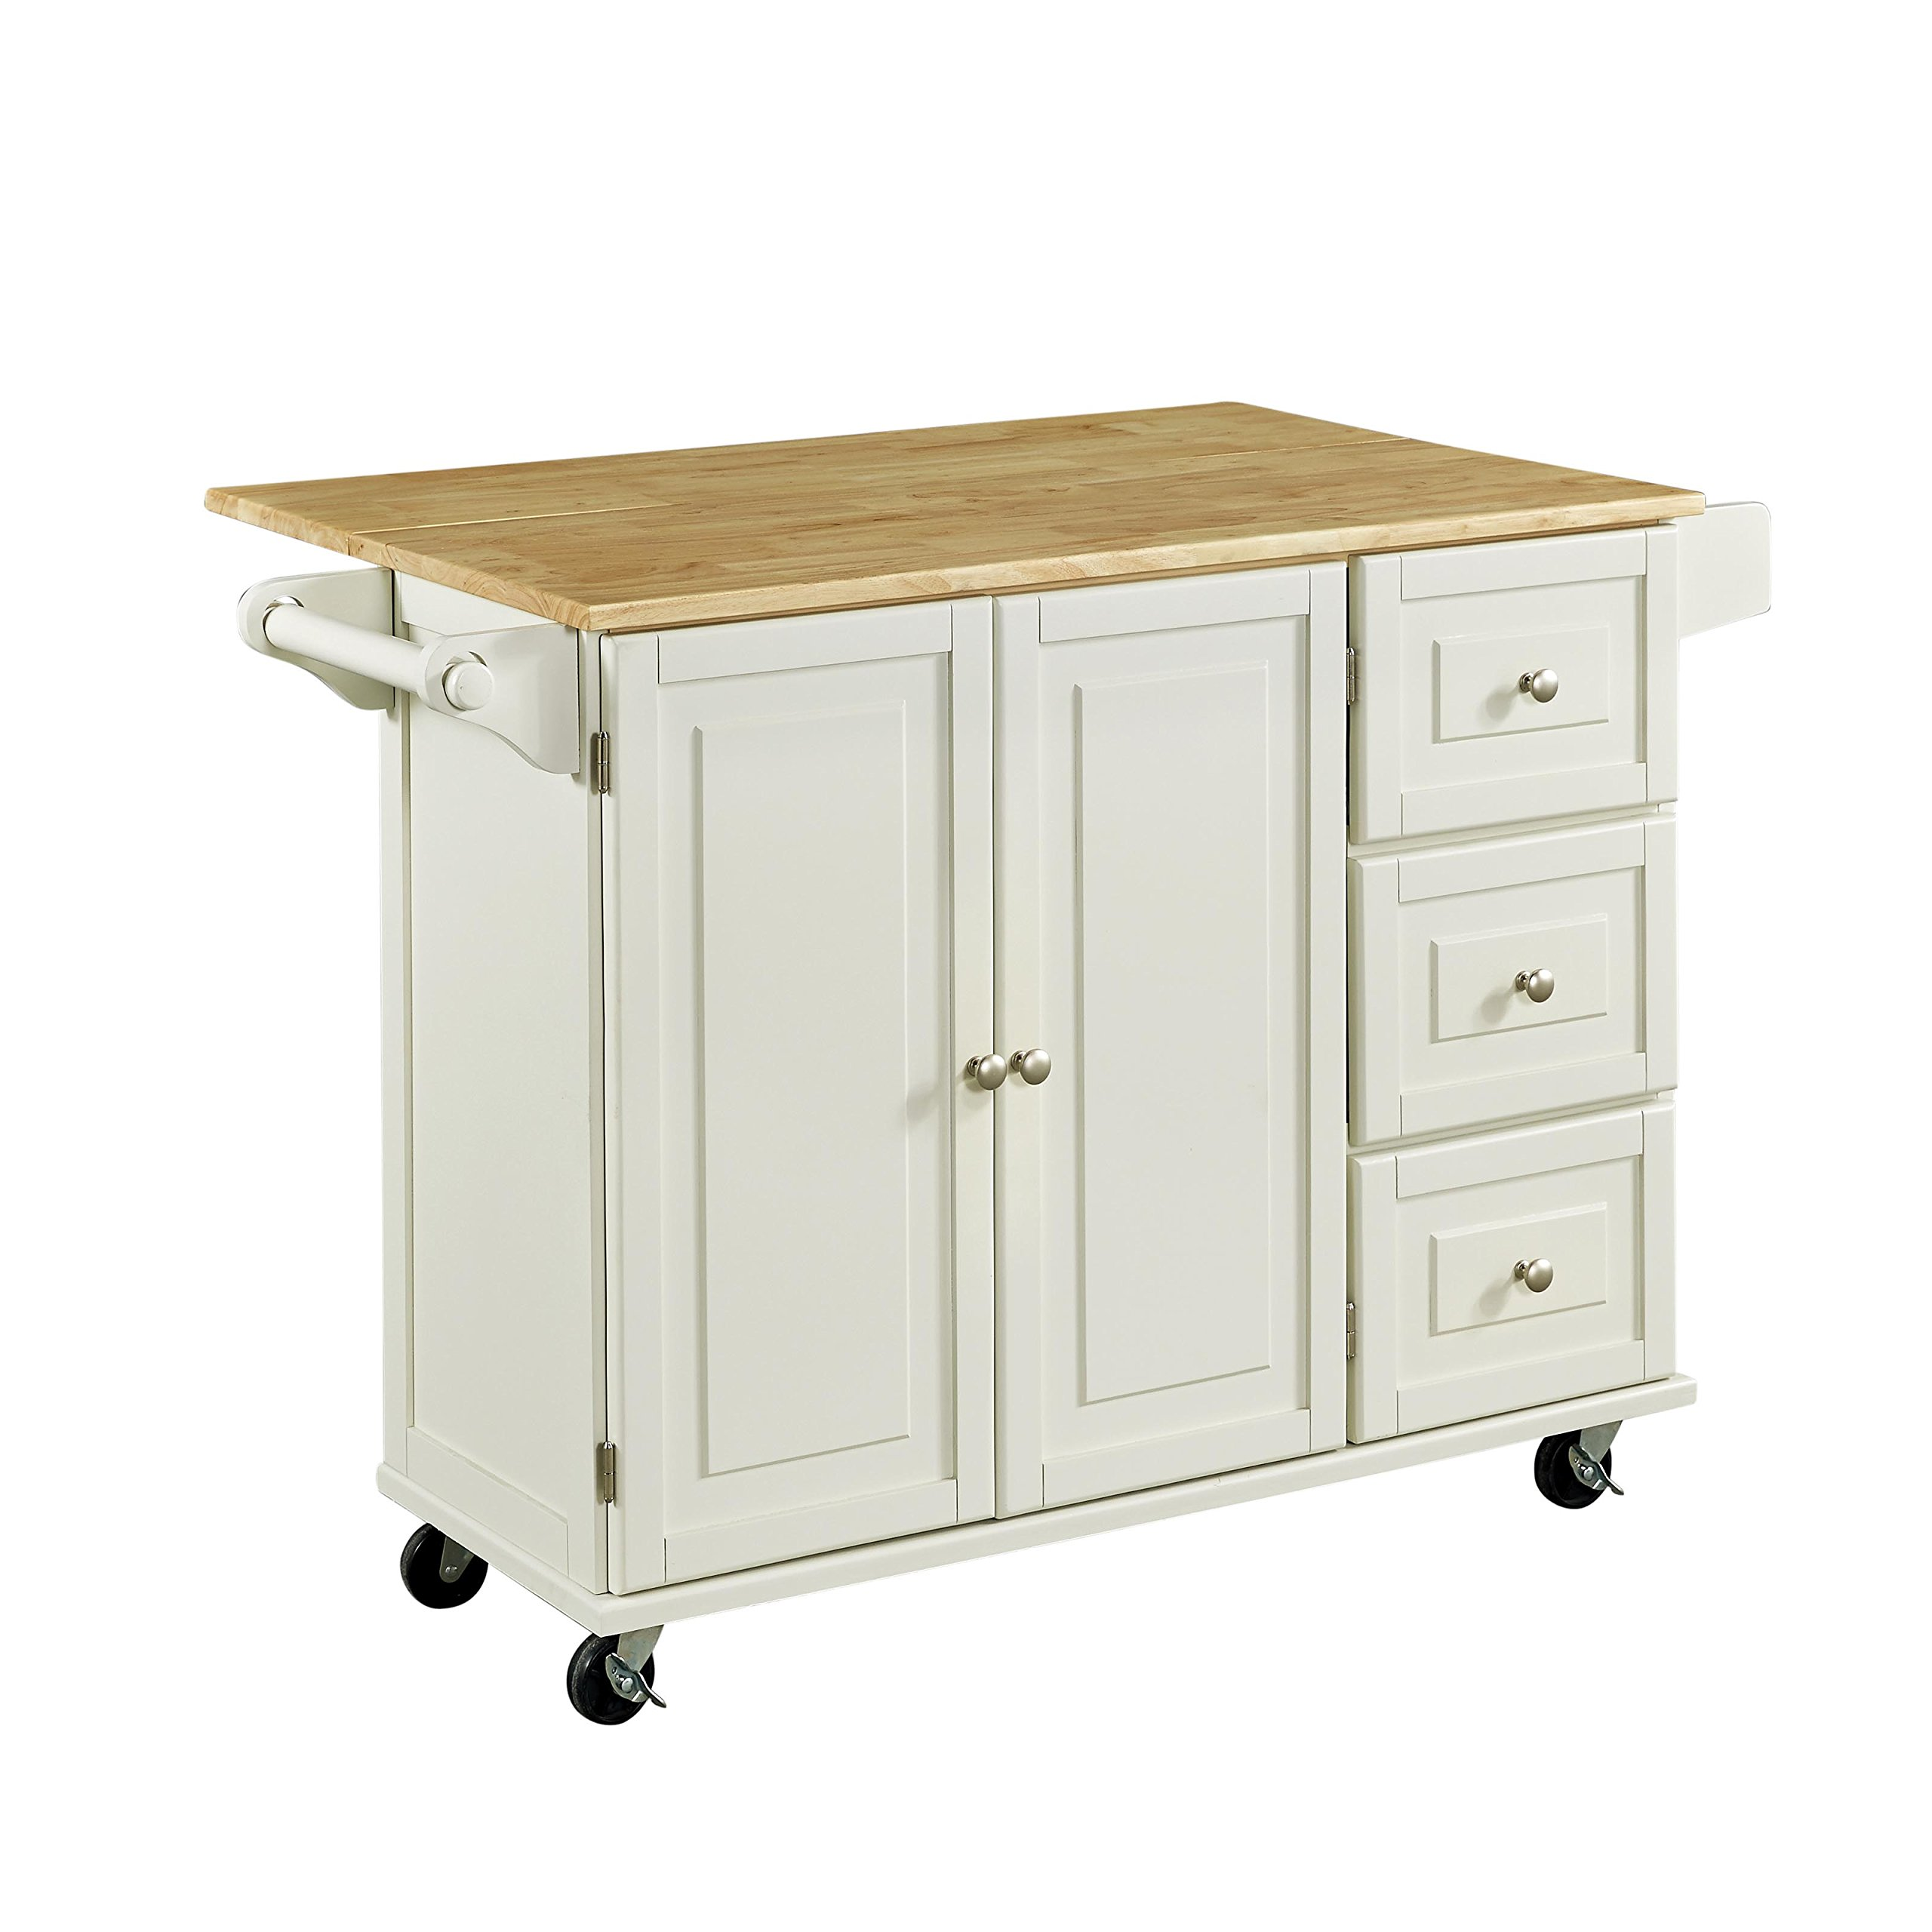 Home Styles 4511-95 Liberty Kitchen Cart with Wood Top, White by Home Styles (Image #10)